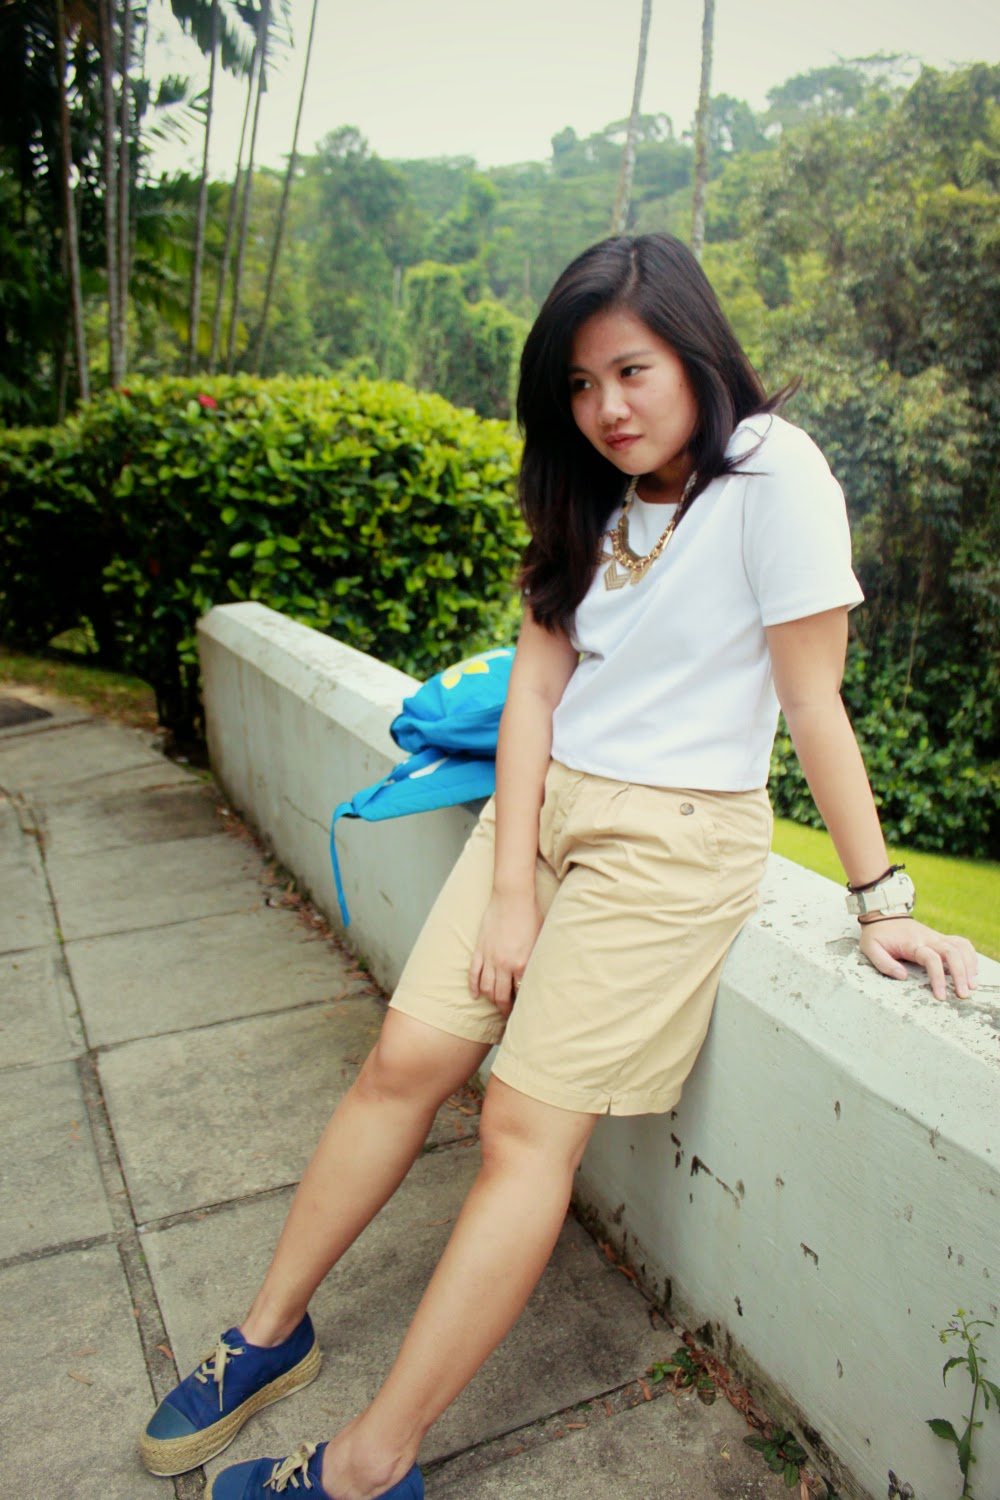 xincerely, singapore blogger, ootd, wiwt, lookbooksg